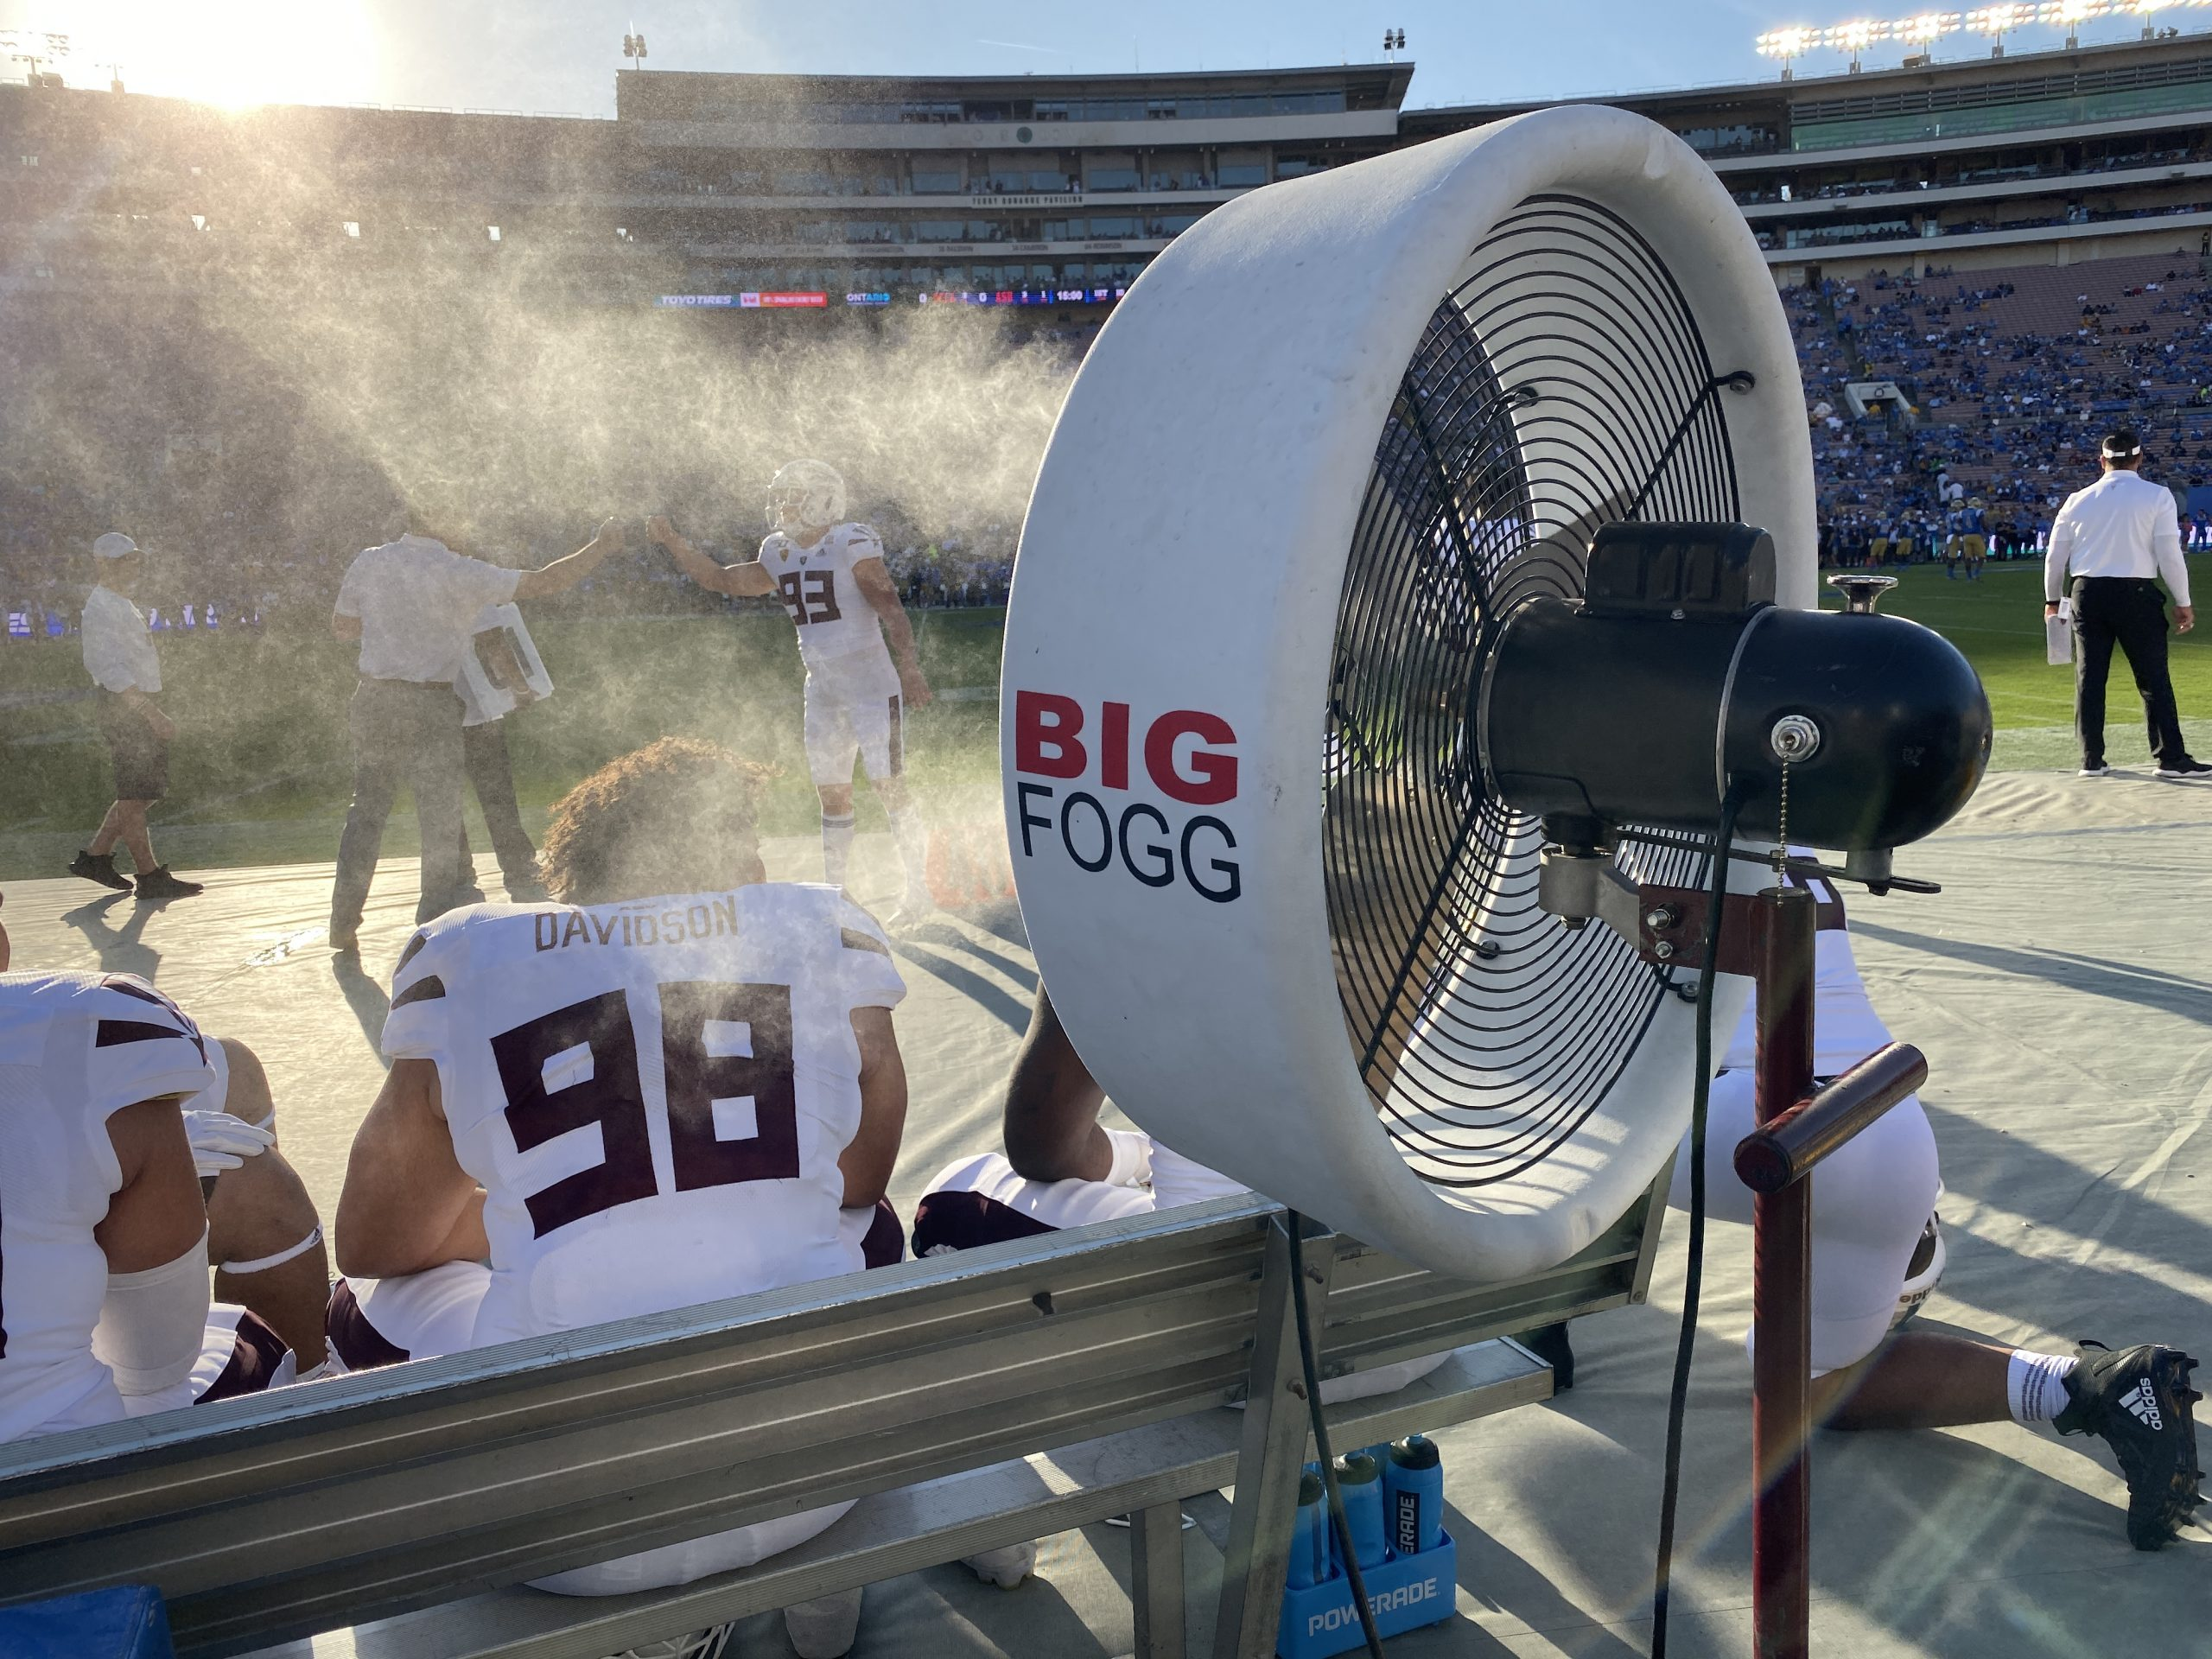 Misting Fans cooling football players in the stadium